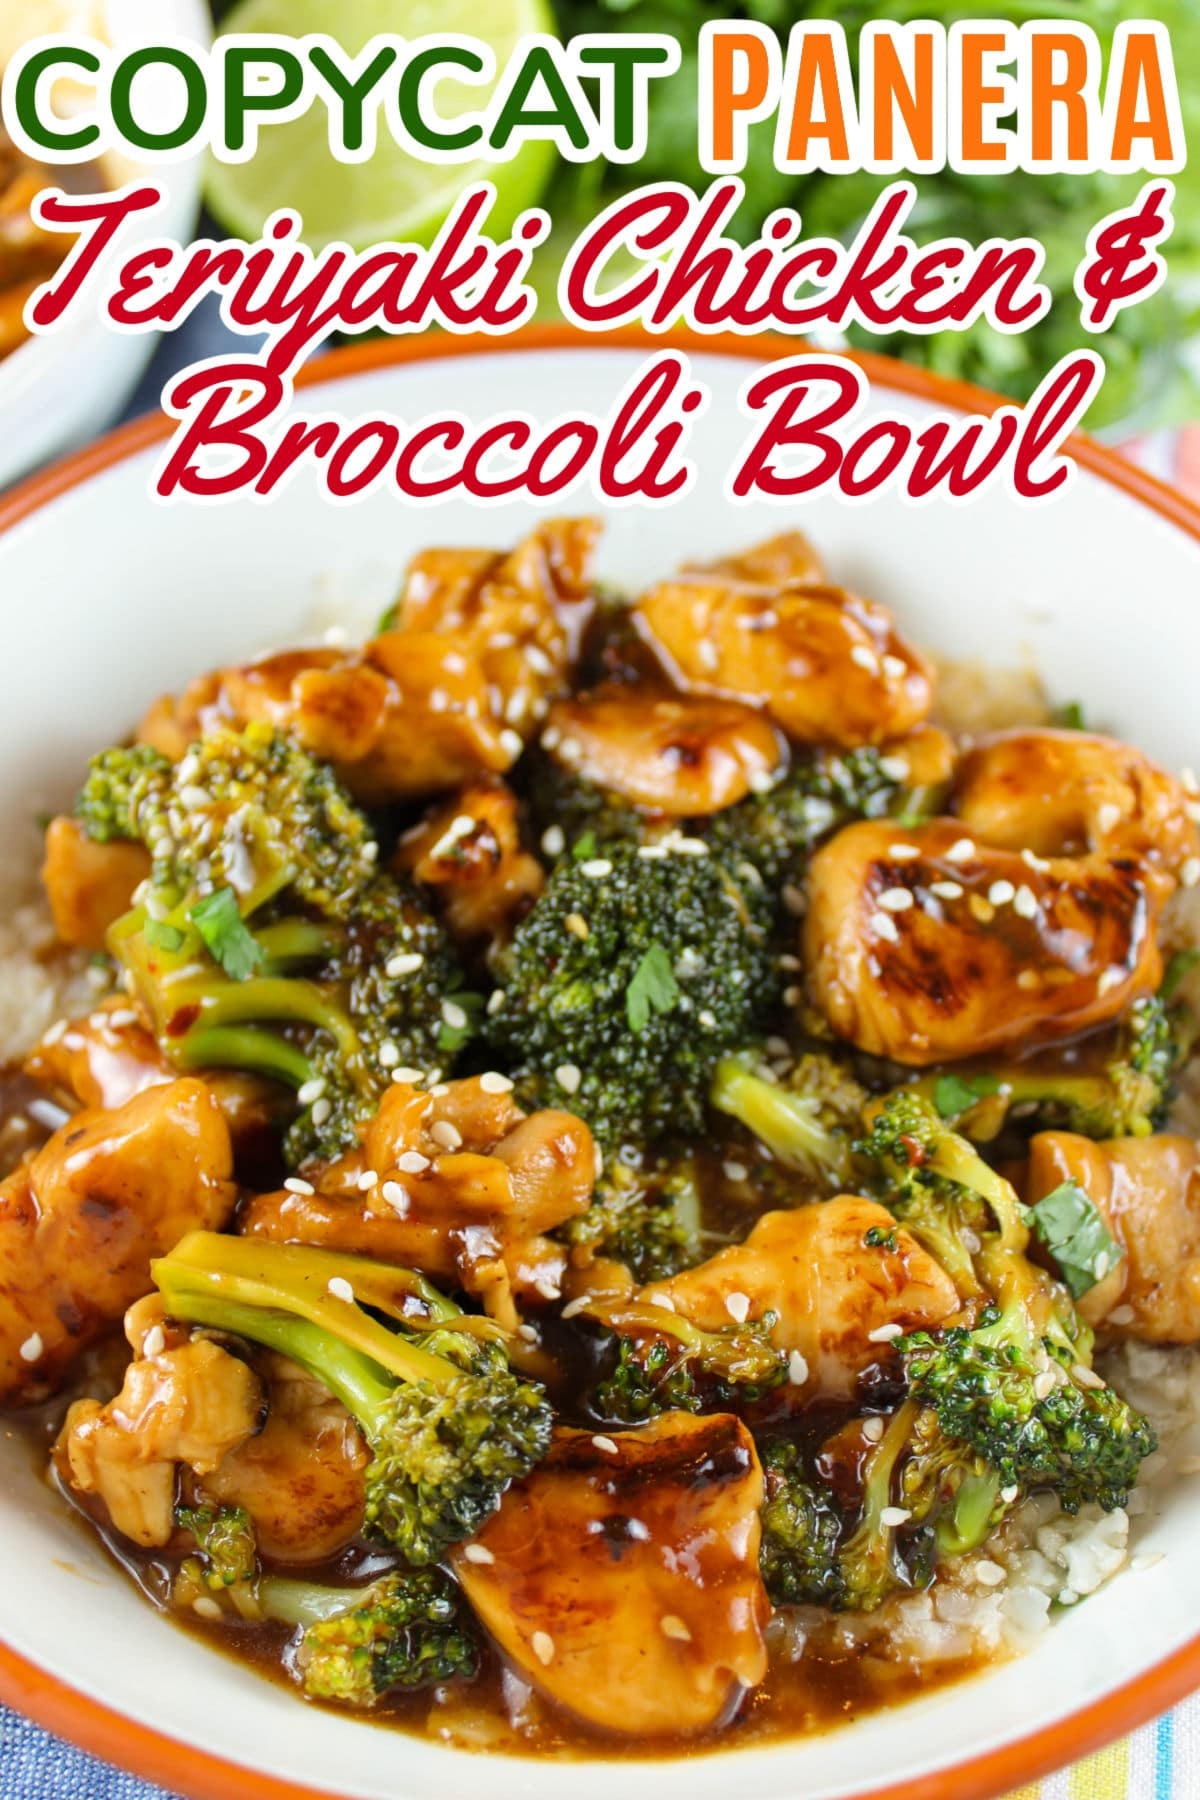 Panera's new Teriyaki Chicken & Broccoli Bowl is new to the menu and I love it! Frankly - I loved it so much I came home and made it the very next day! It's a little sweeter than some teriyaki sauces I've tasted before - but it is super delicious and ready in about 15 minutes!  via @foodhussy